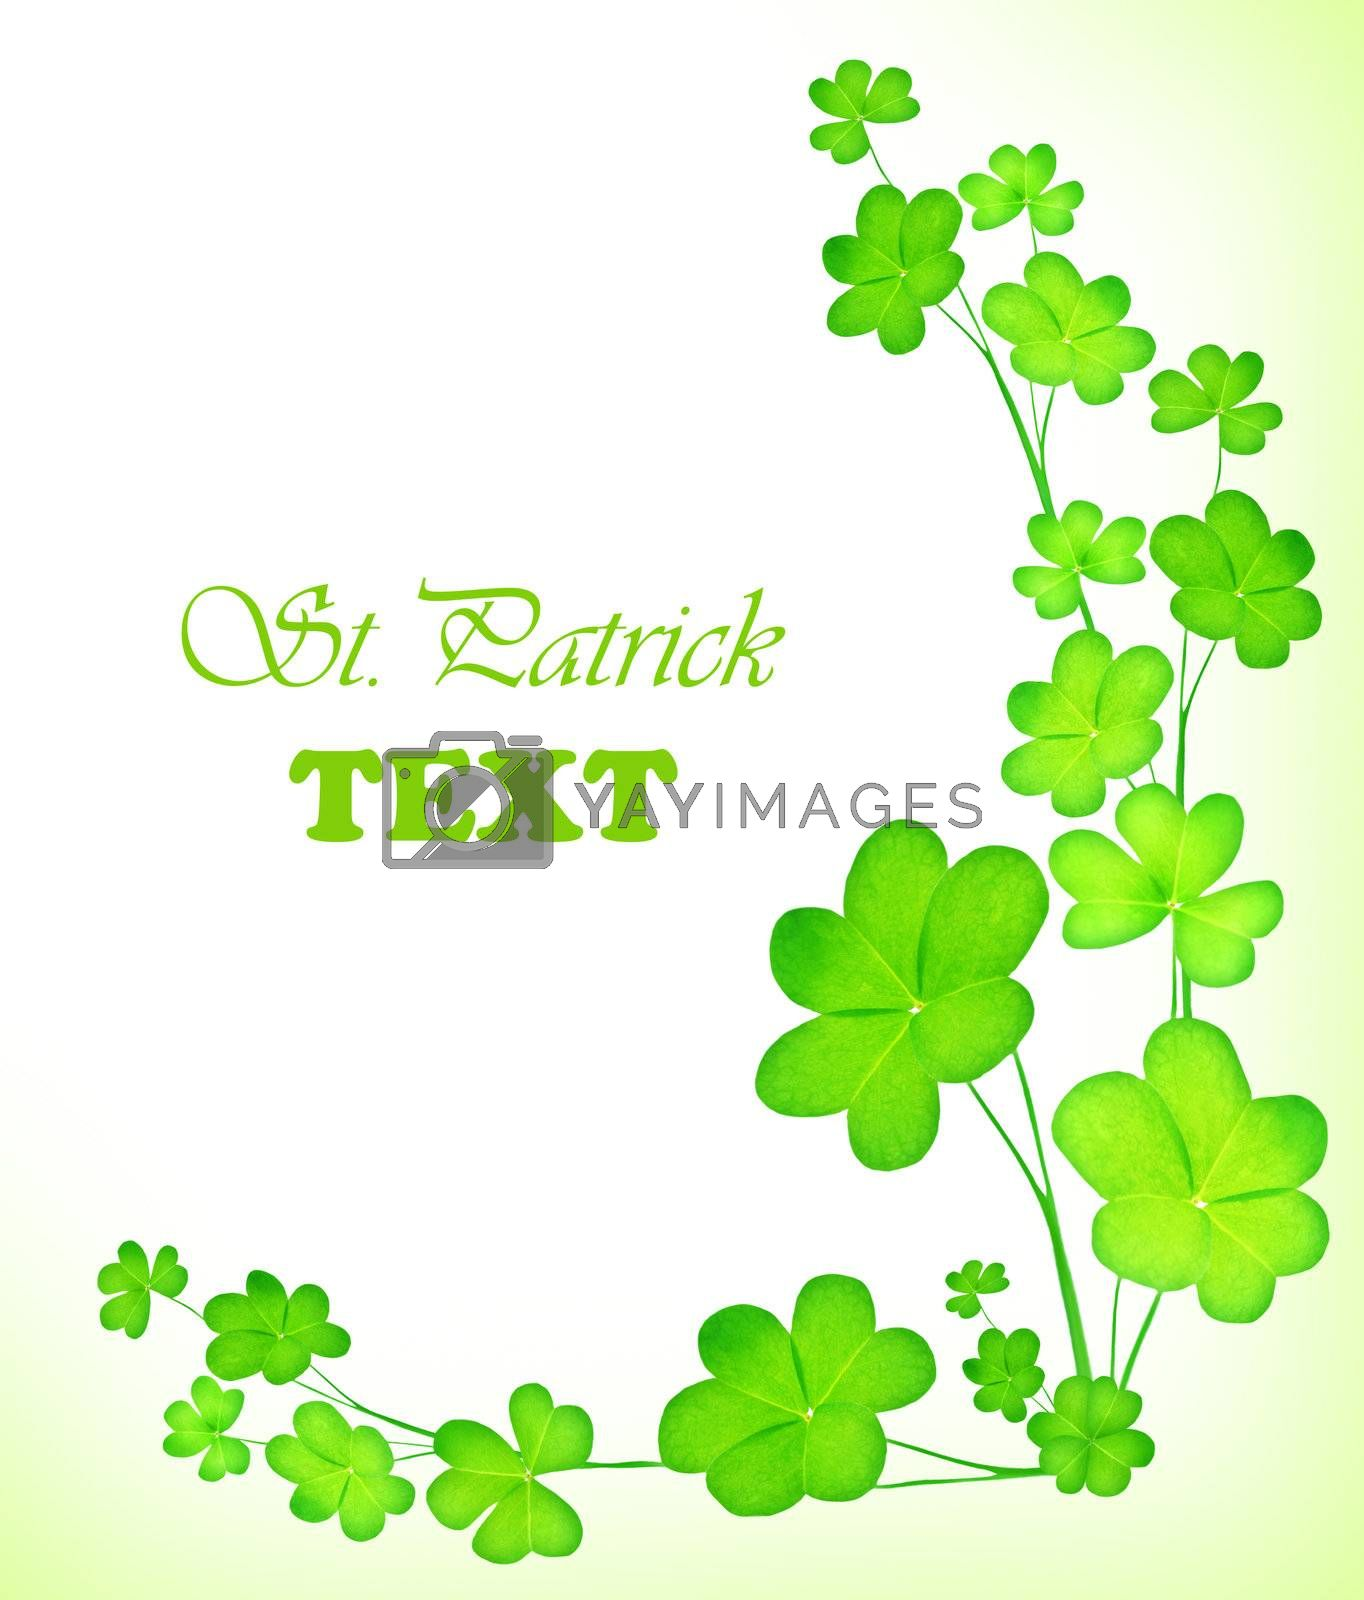 Green clover holiday border, st.Patrick's day decoration isolated on white background with text space